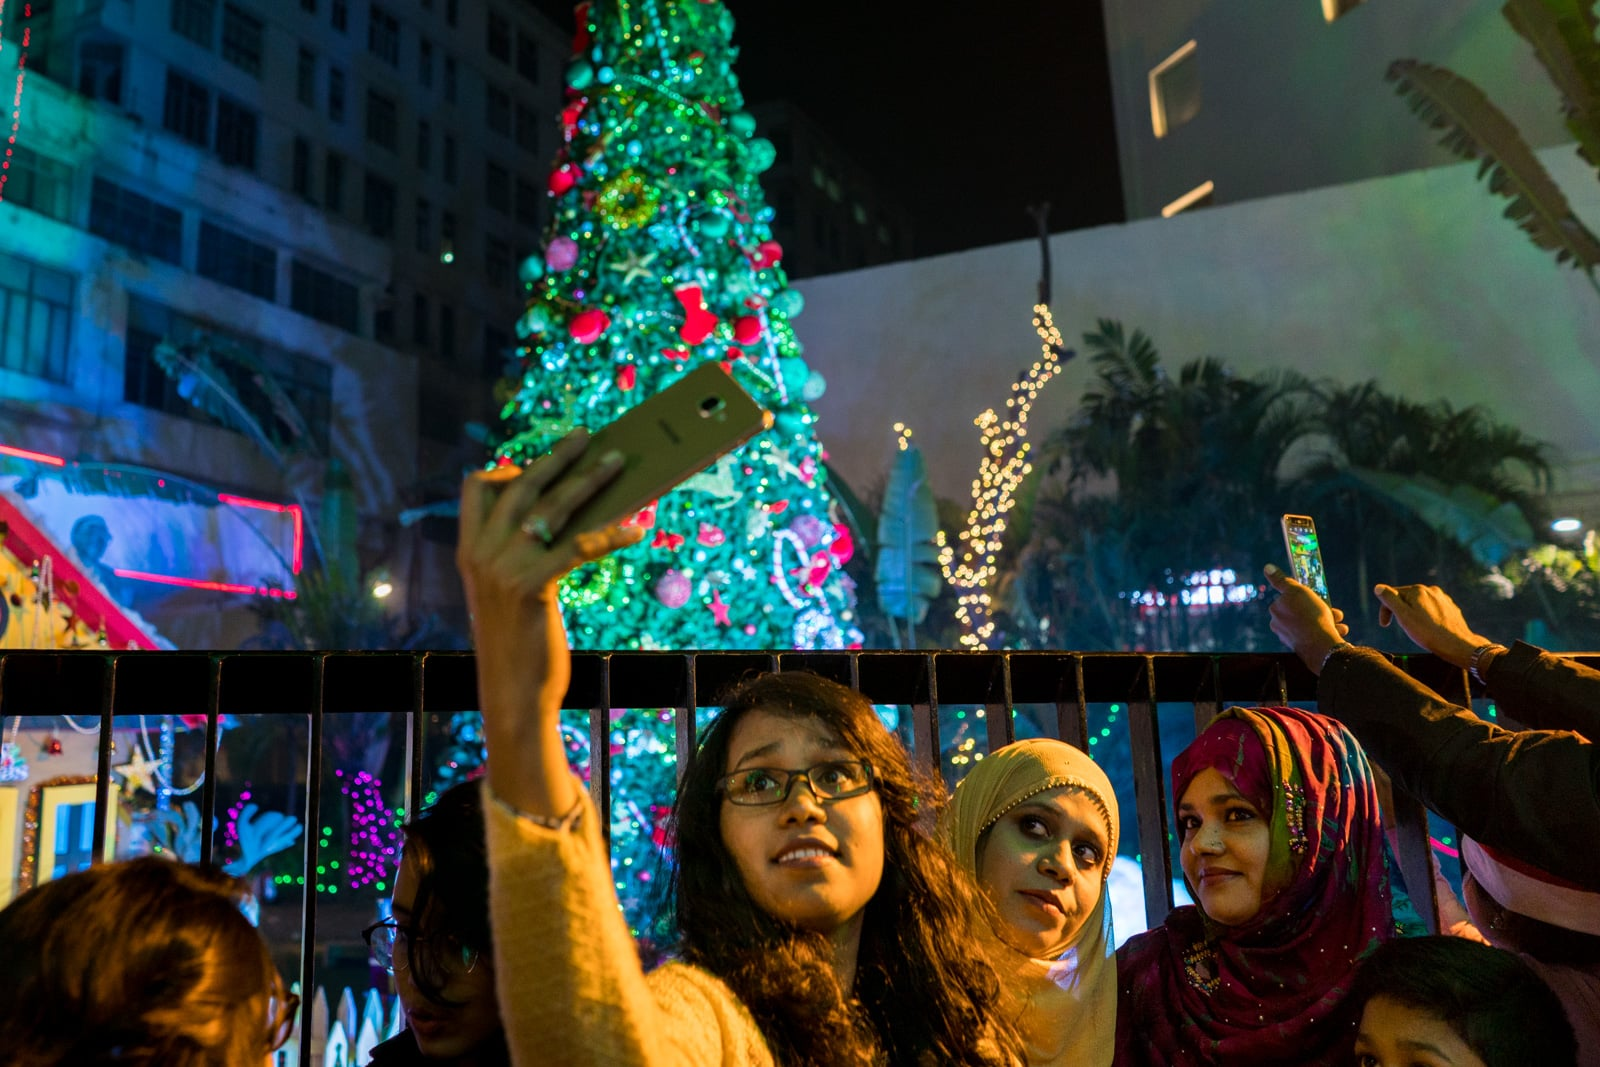 Christmas in Kolkata, India - Girls in hijab taking selfies in front of a Christmas tree on Park Street - Lost With Purpose travel blog